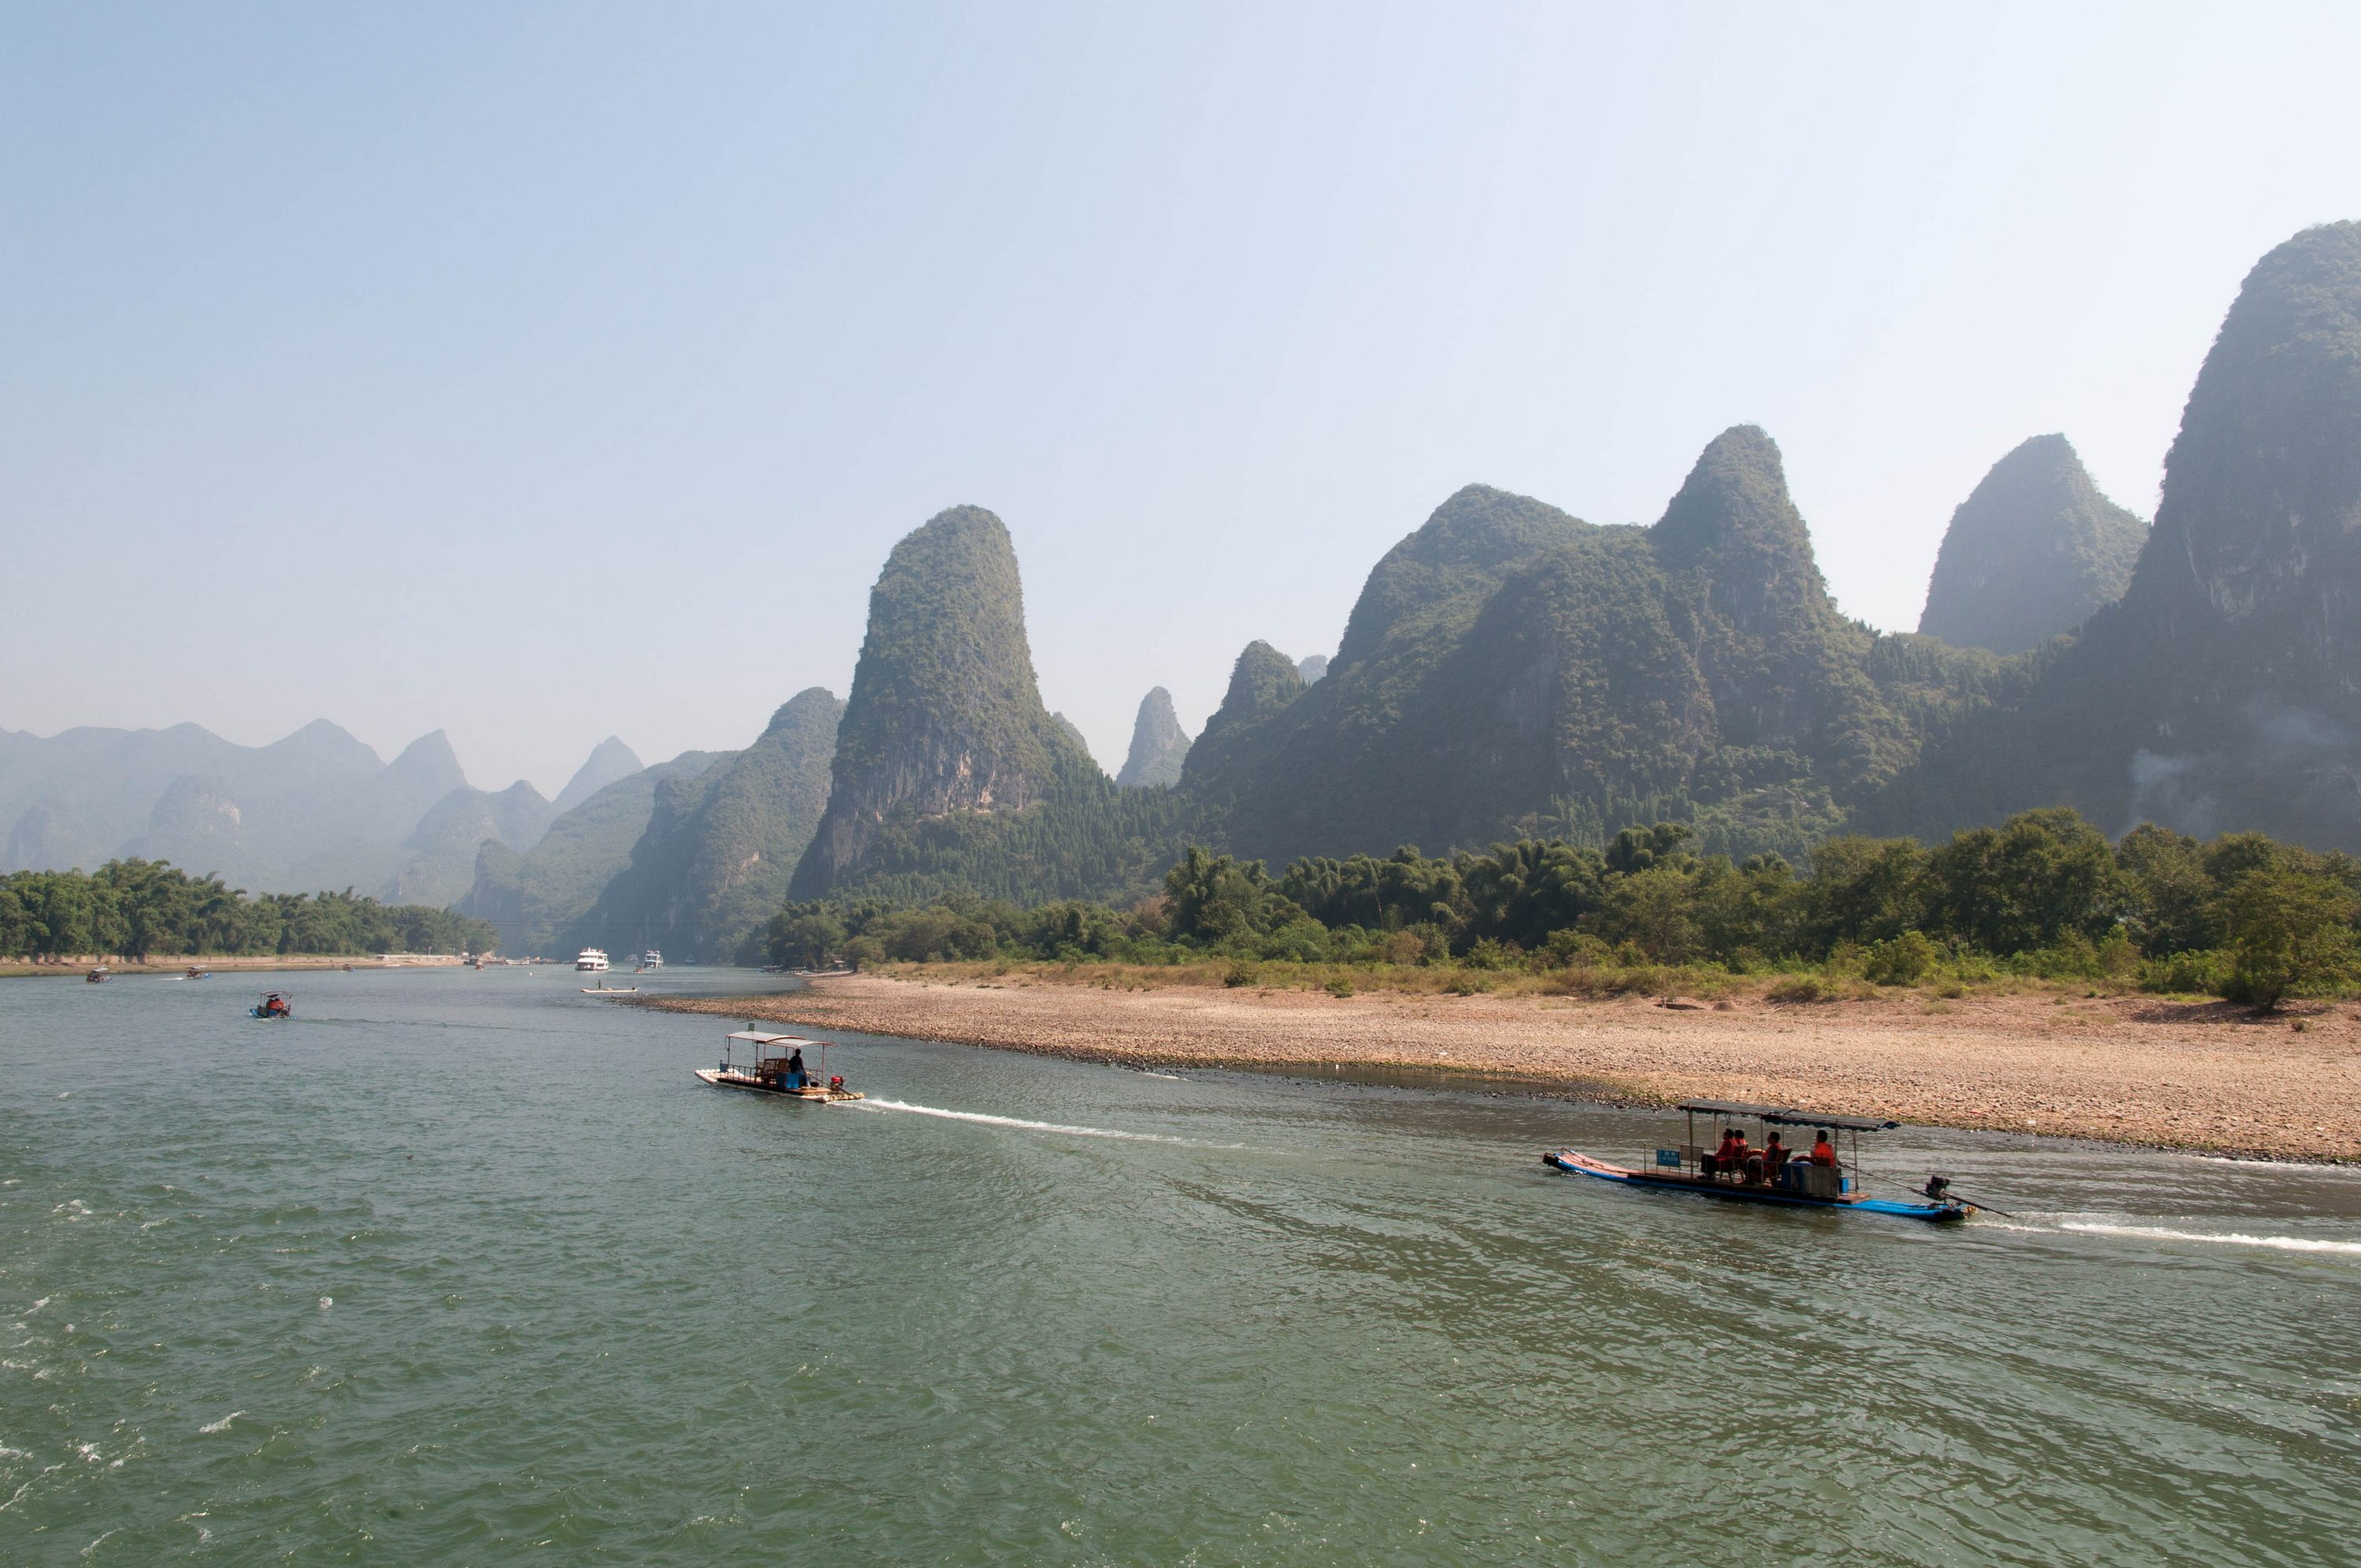 Guilin day/jour 1 – The river Li/La rivière Li